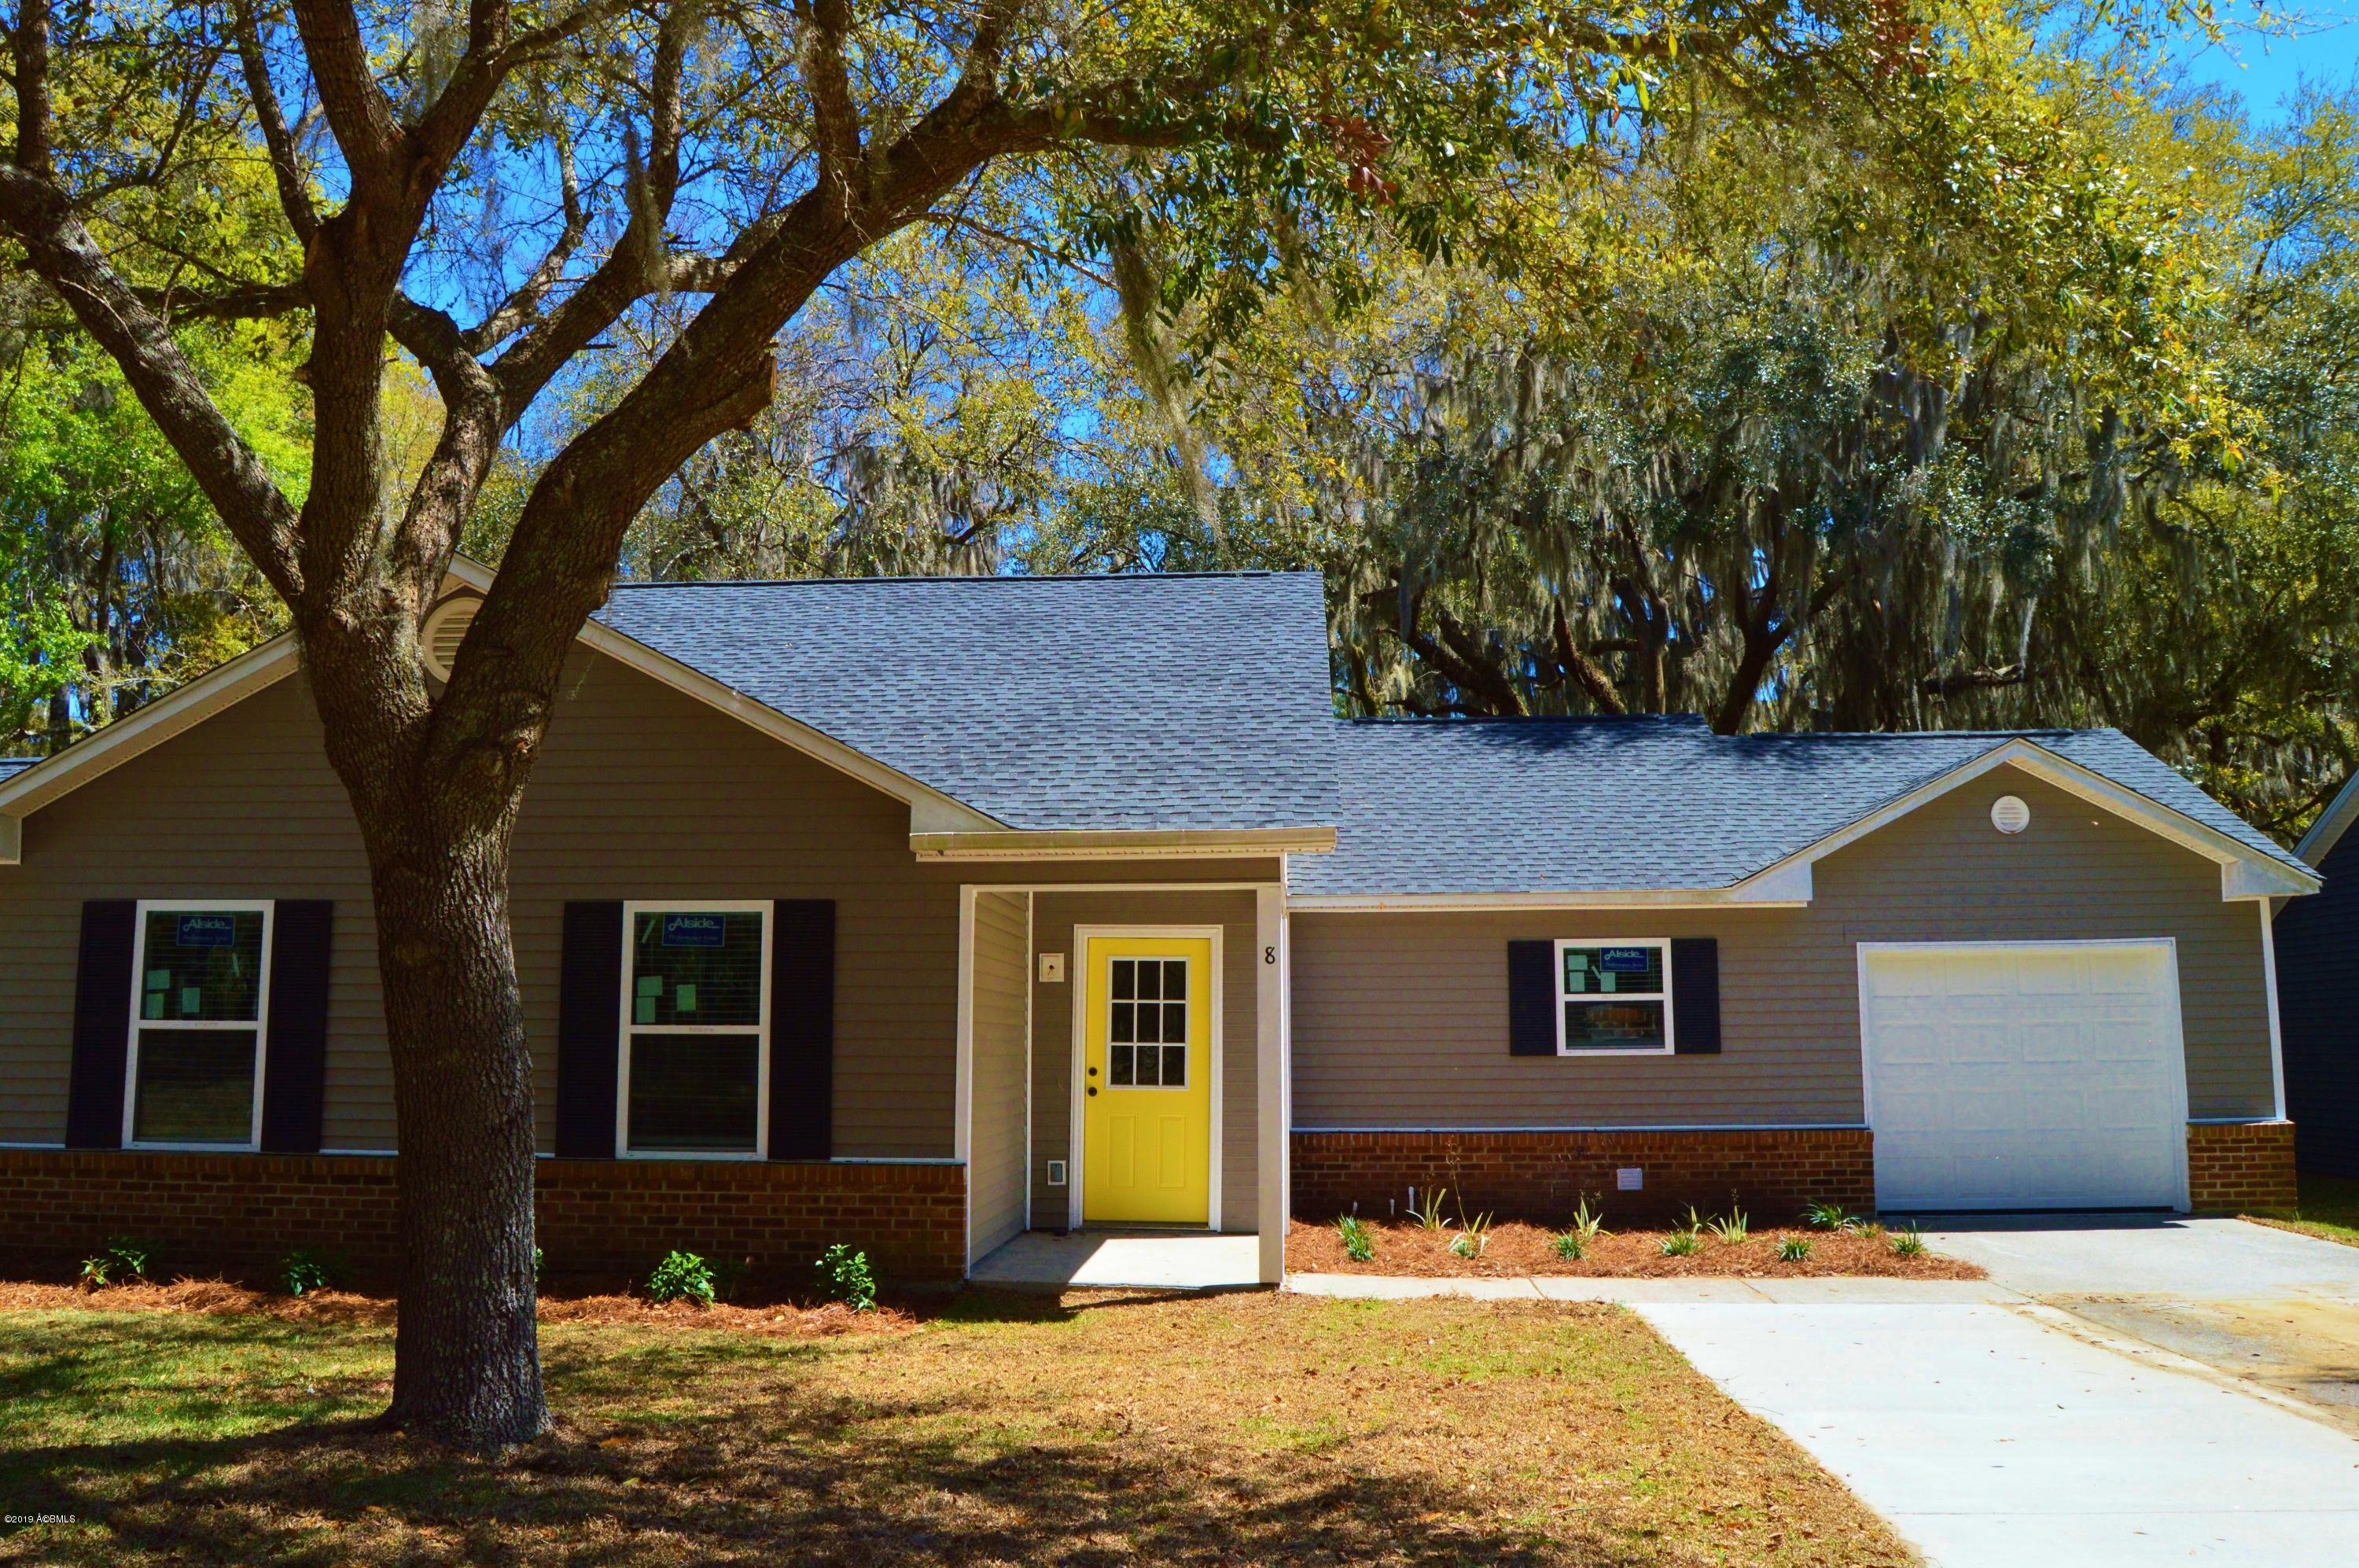 Photo of 8 Avalon Drive, Beaufort, SC 29907